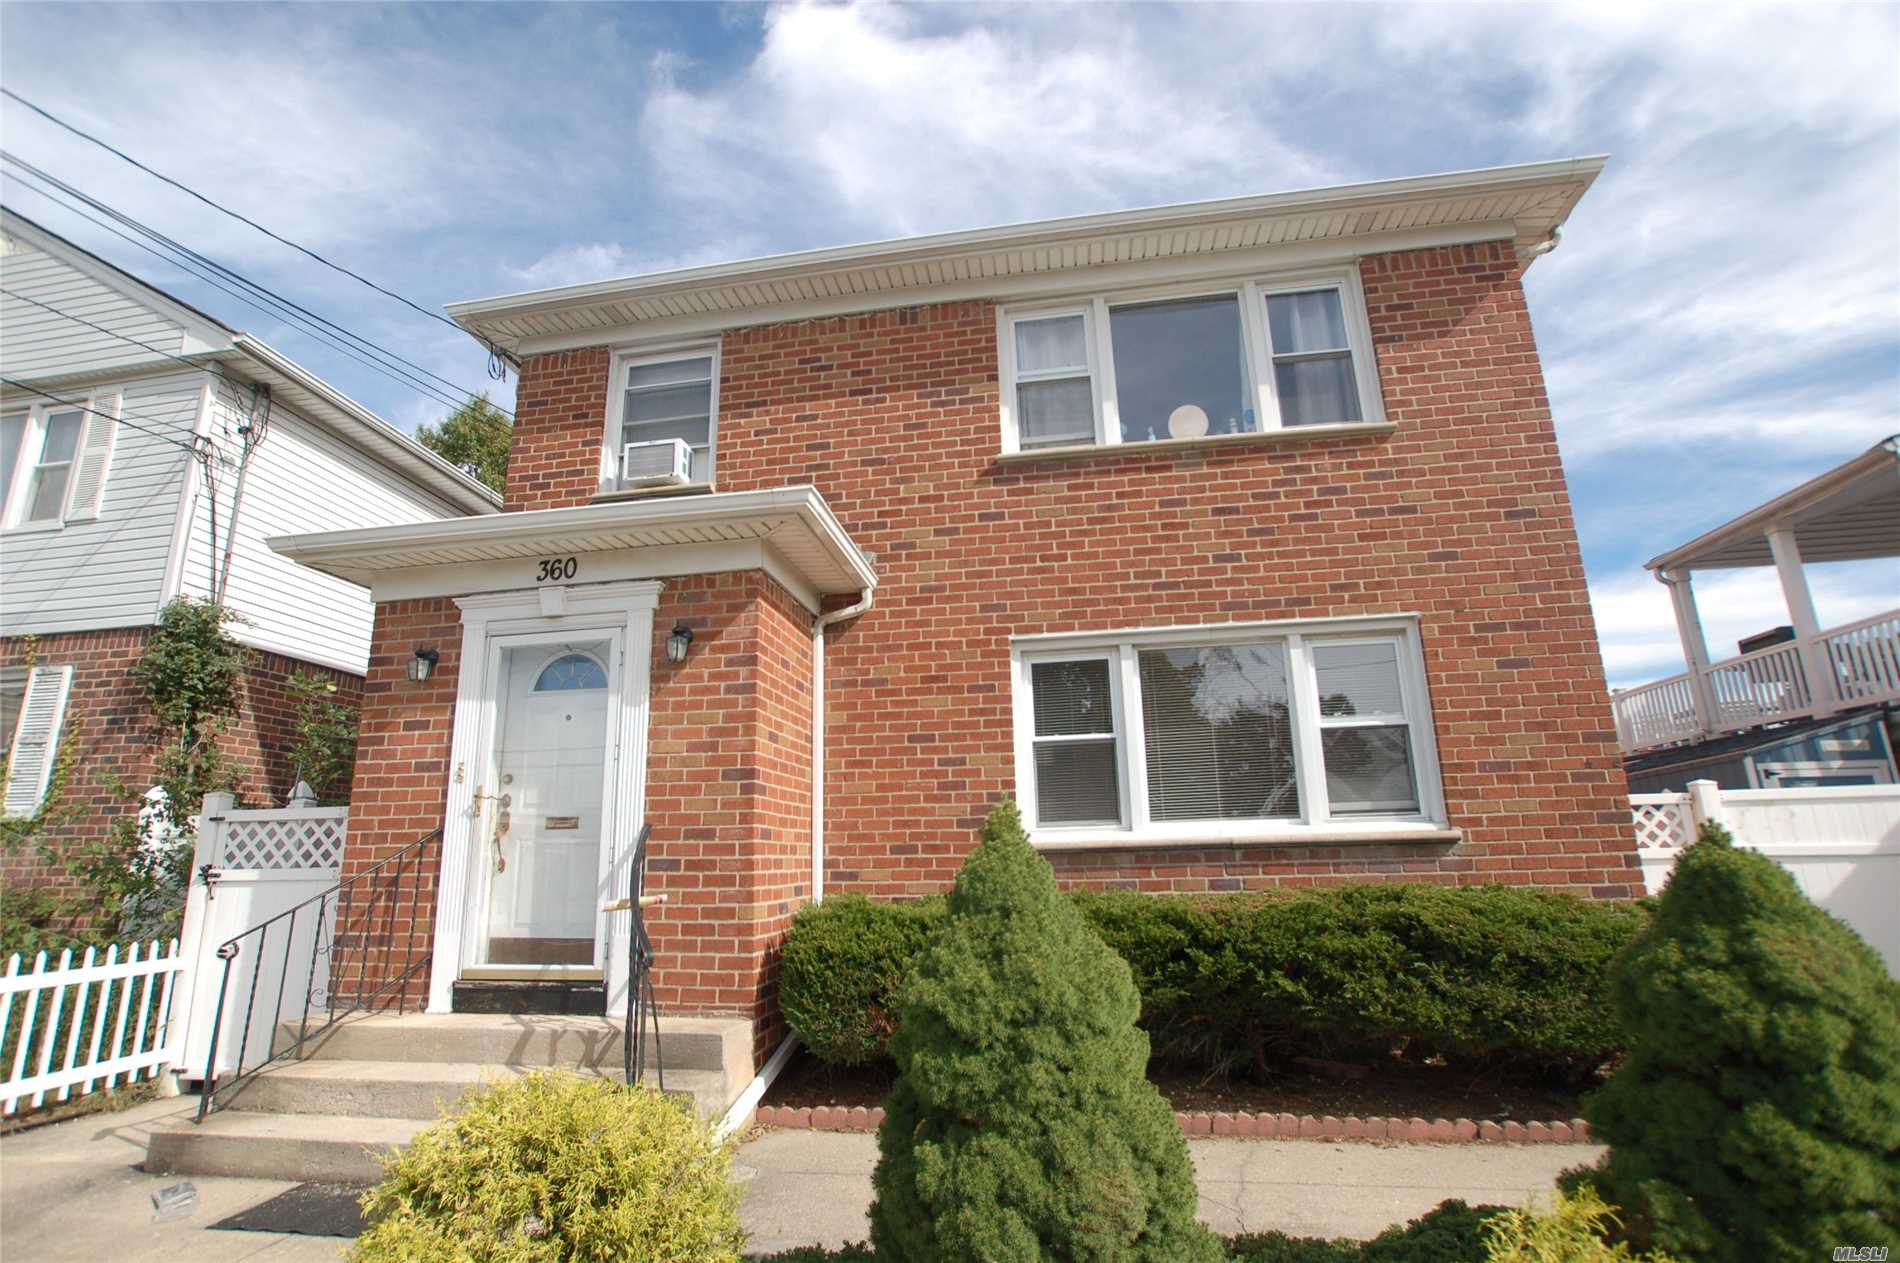 Property for sale at 360 Covert Ave, Floral Park,  NY 11001